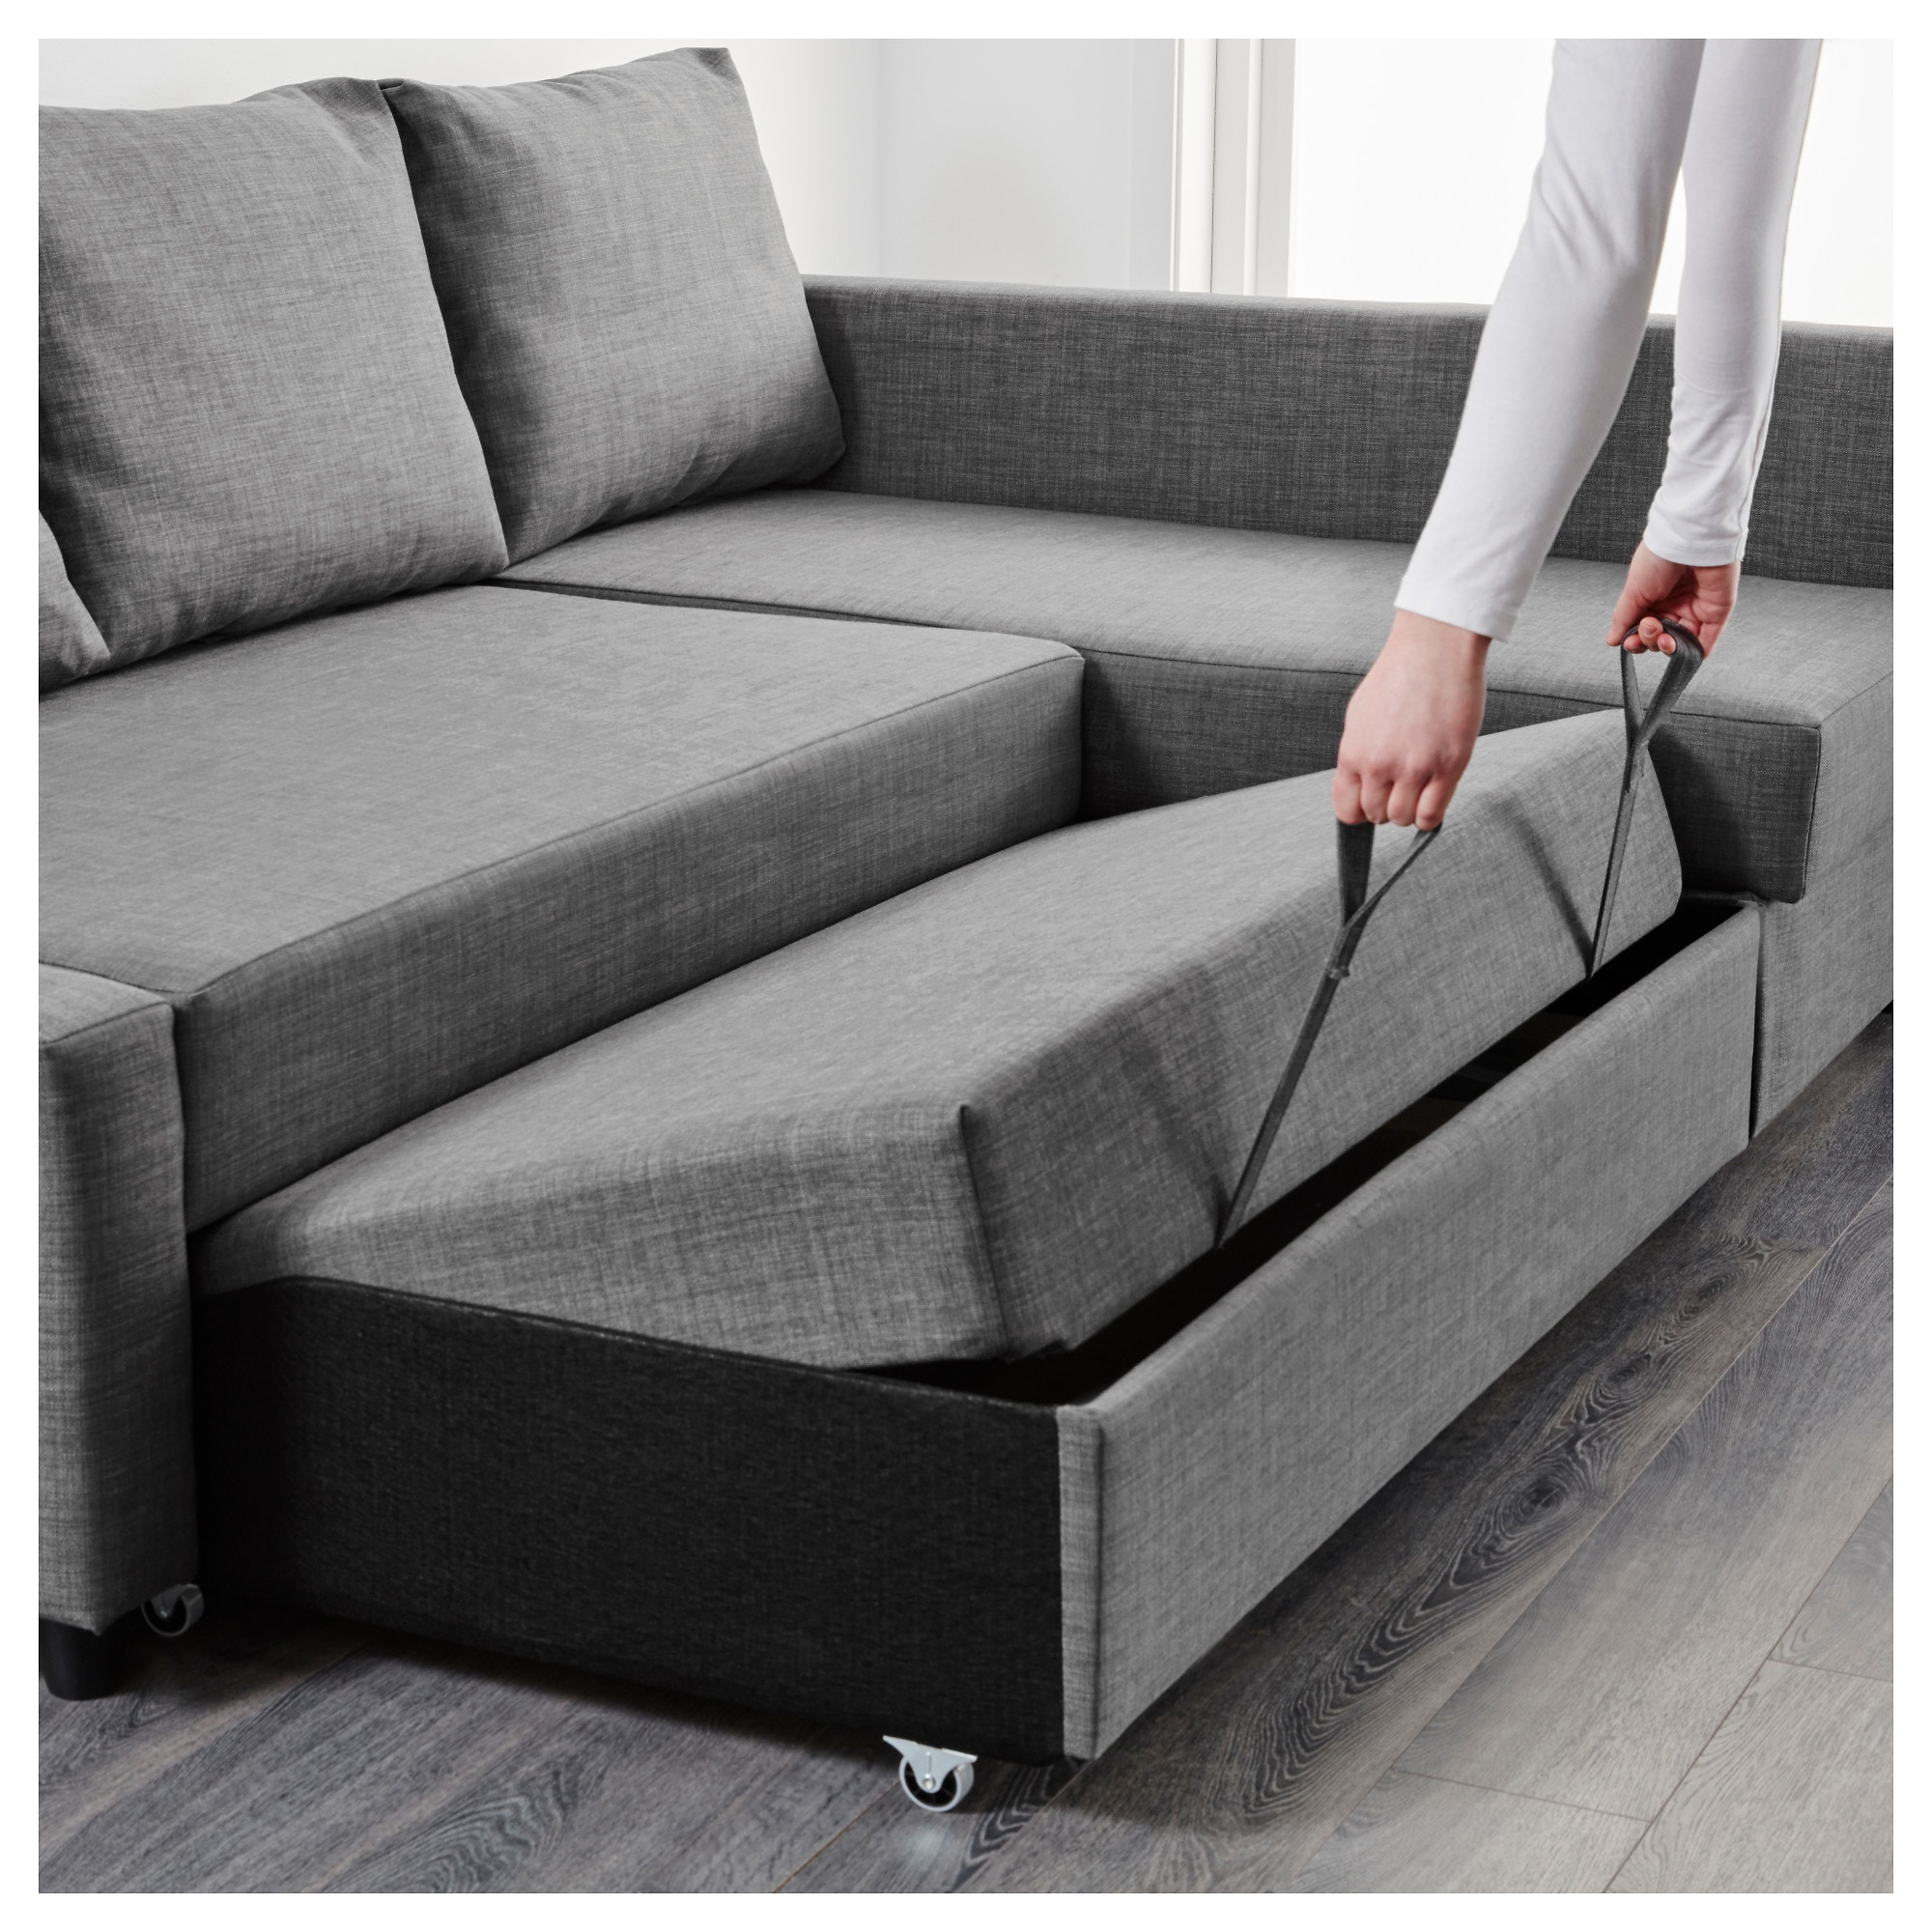 Trendy Friheten Corner Sofa Bed With Storage Skiftebo Dark Grey – Ikea Intended For Ikea Sofa Chairs (View 15 of 20)